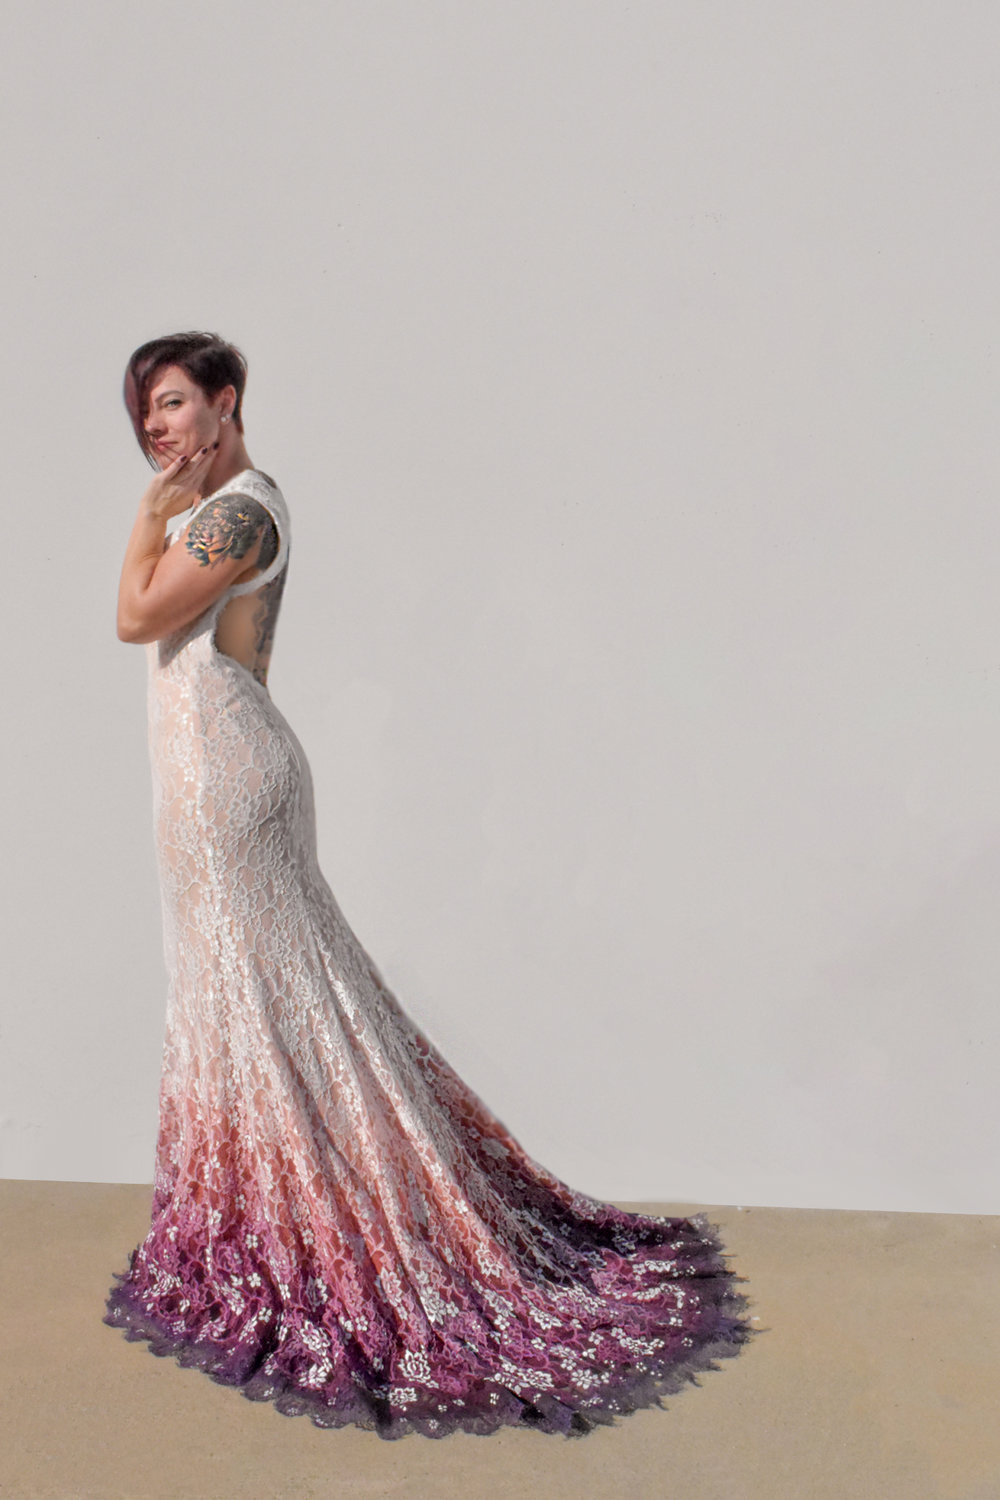 Dress Pinned to Fit Model - More Photos will be added Feb 1st